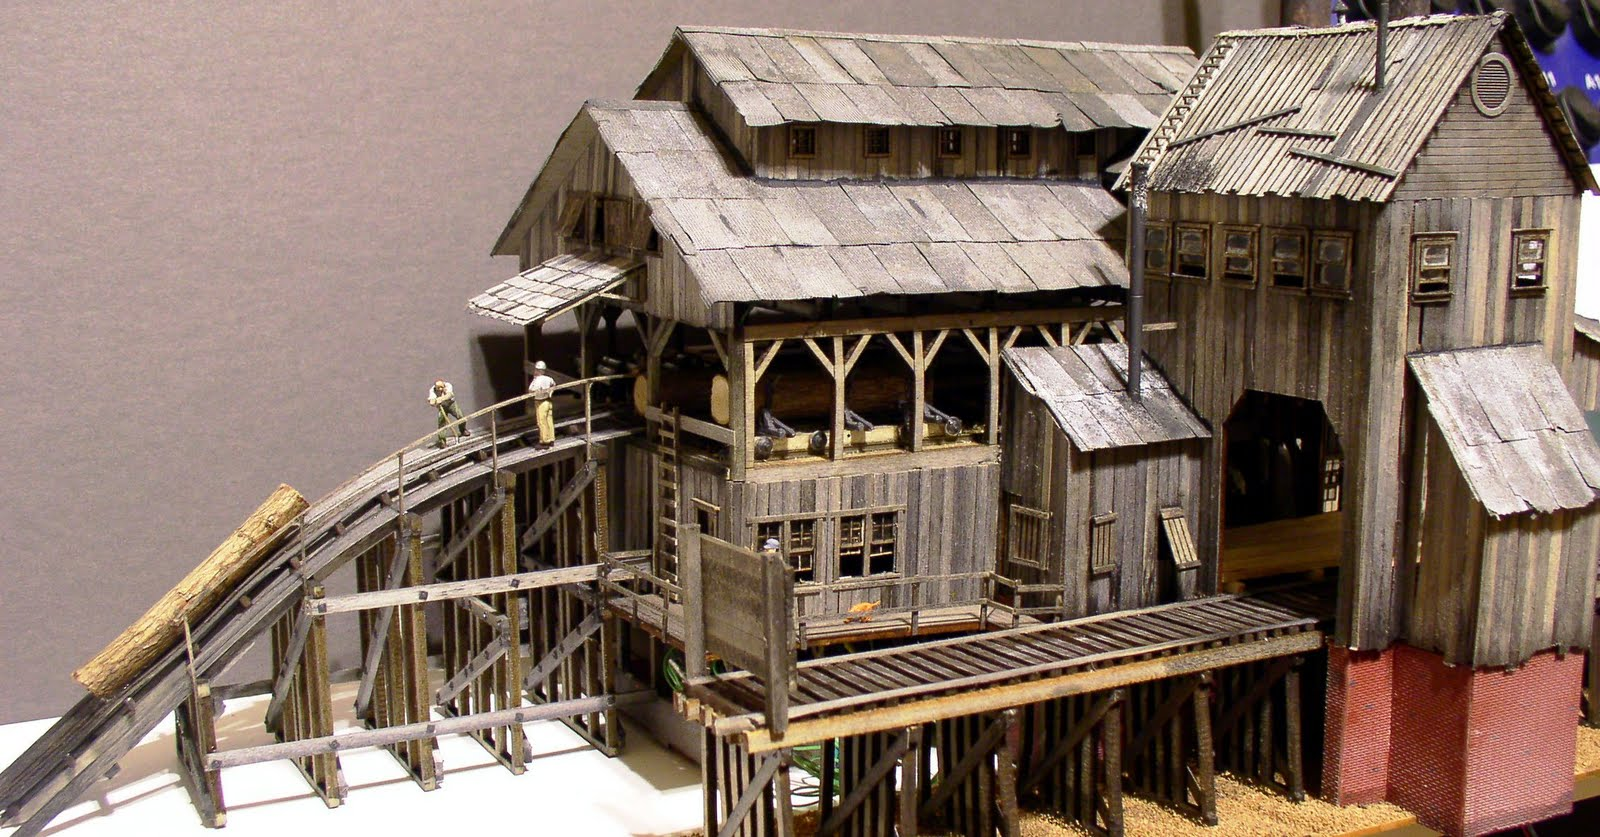 Mike S Railroad Blog From My Workbench